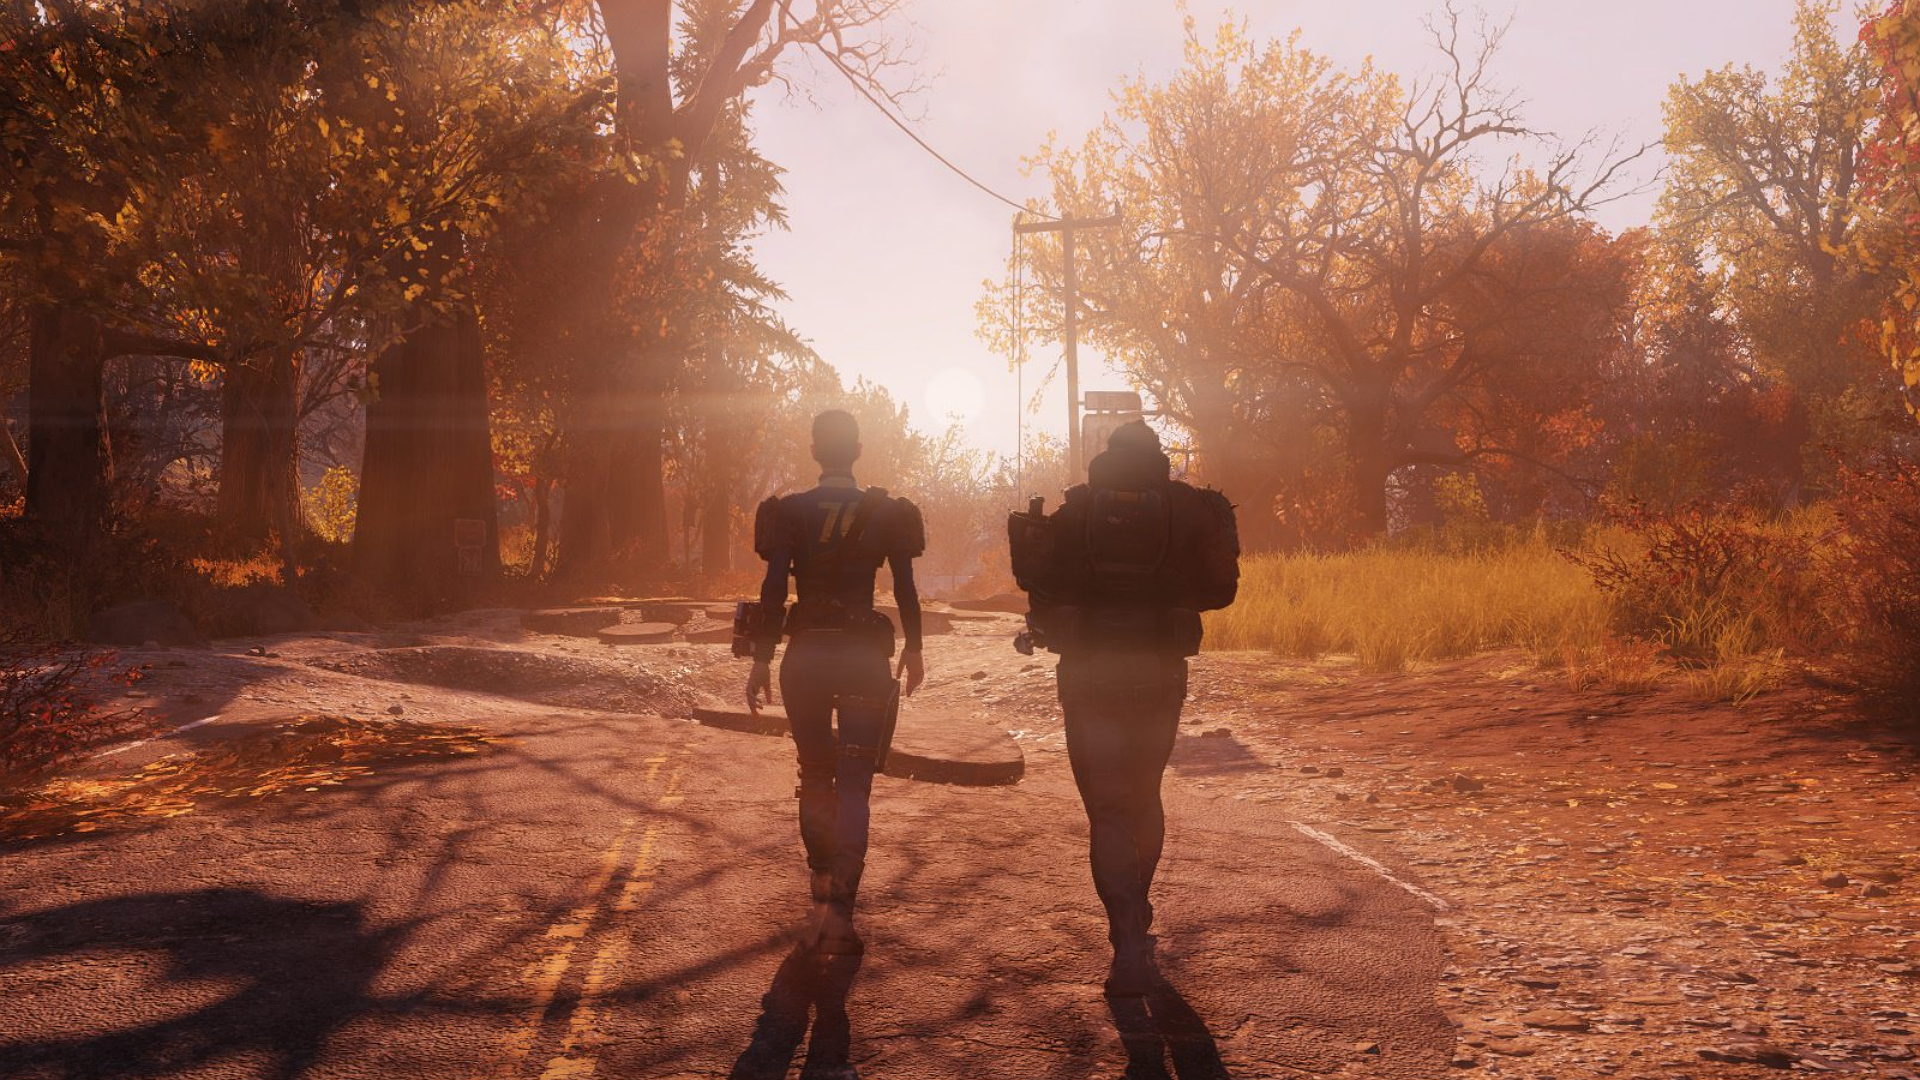 Fallout 76 leveling information: methods to farm XP and